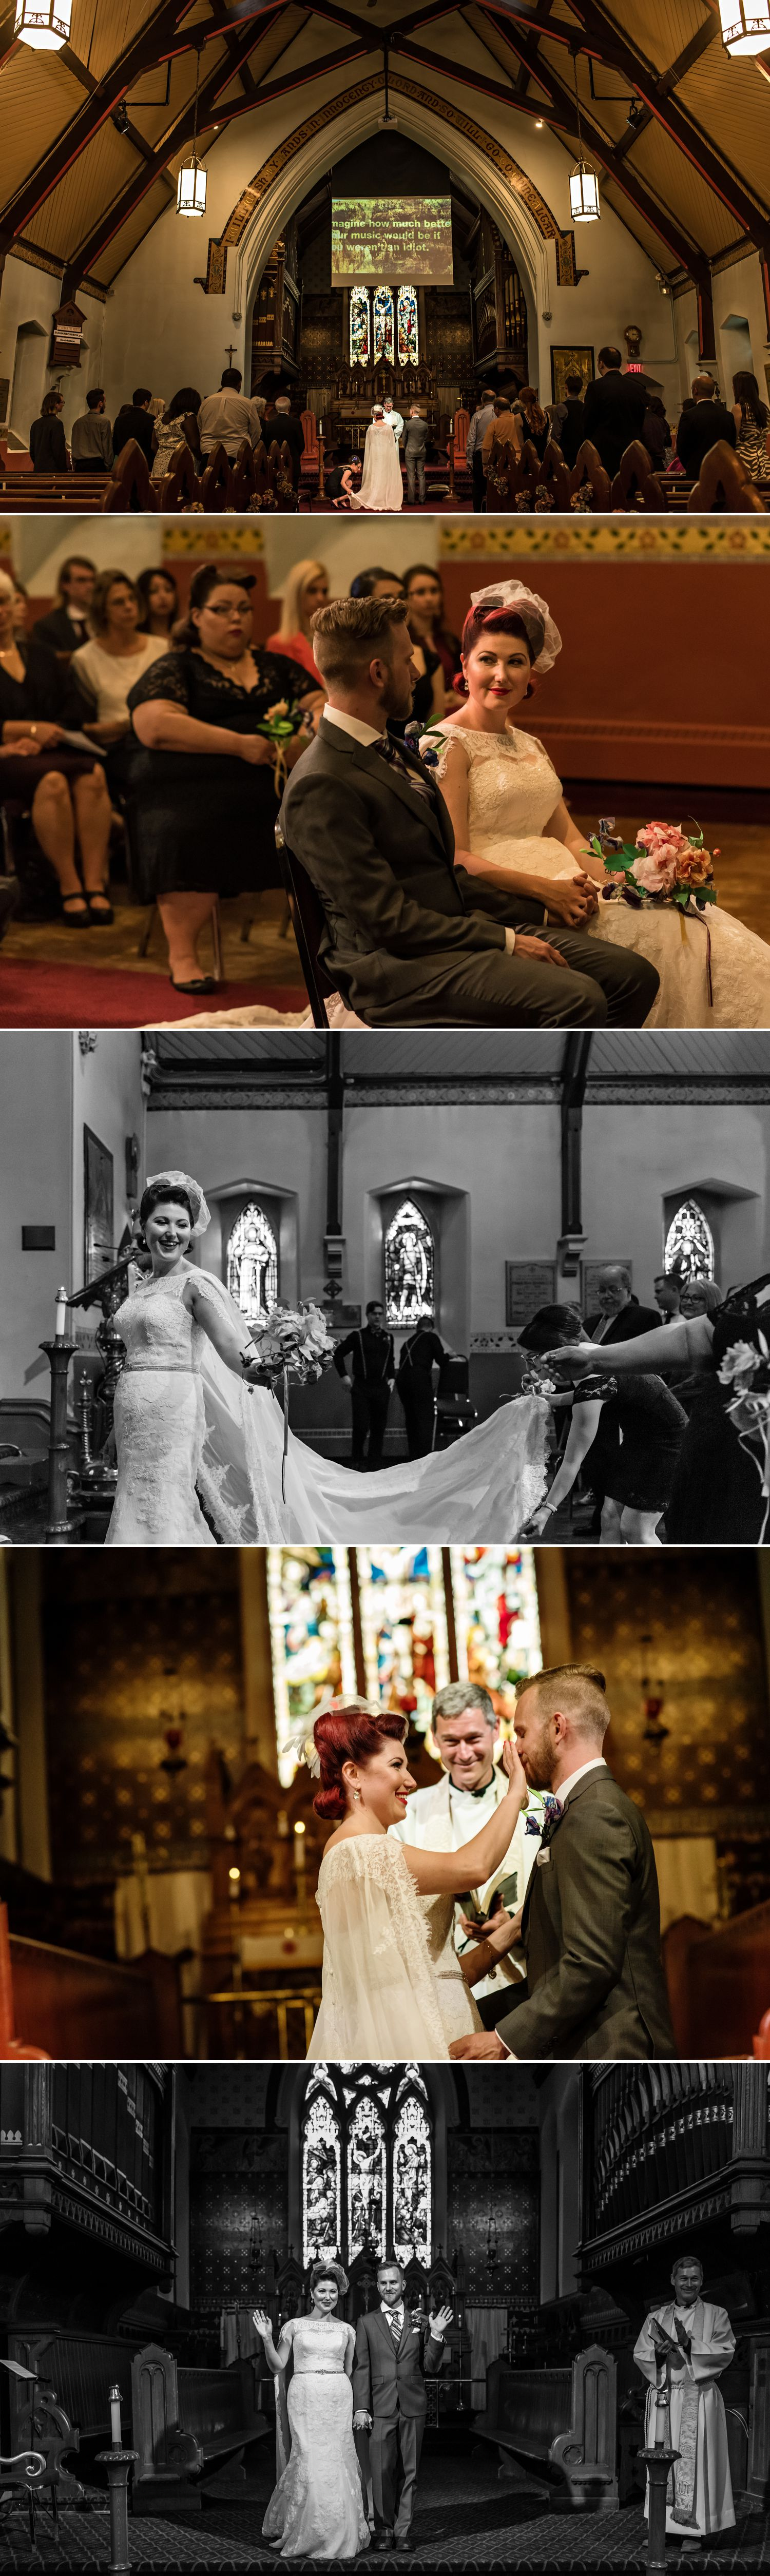 candid moments at a wedding at st albans anglican church in ottawa